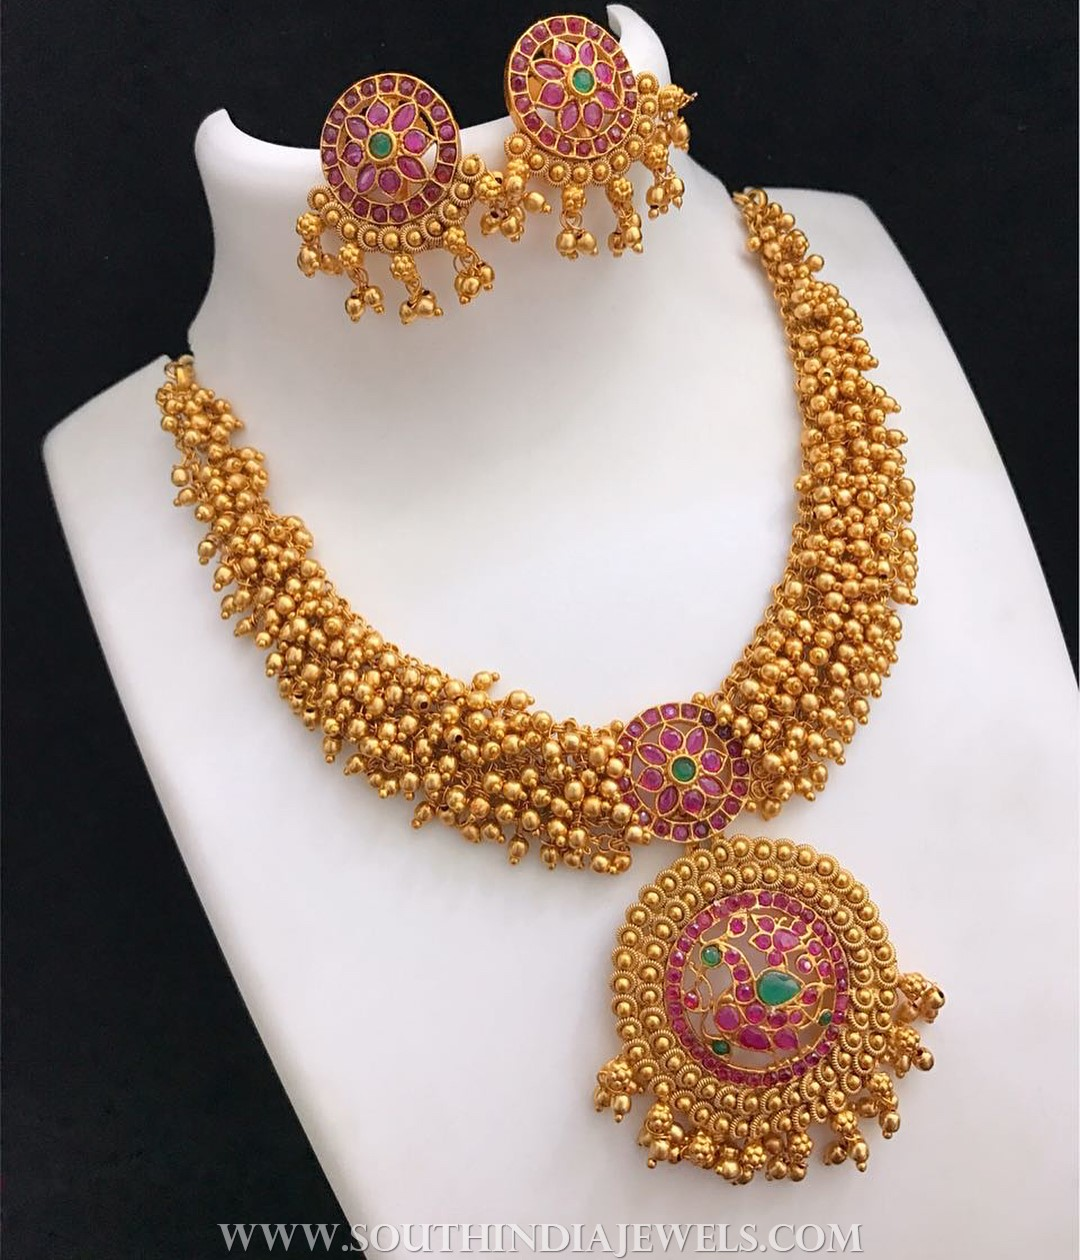 ruby from and karat crystal necklace choker india antique jewelry gold jn